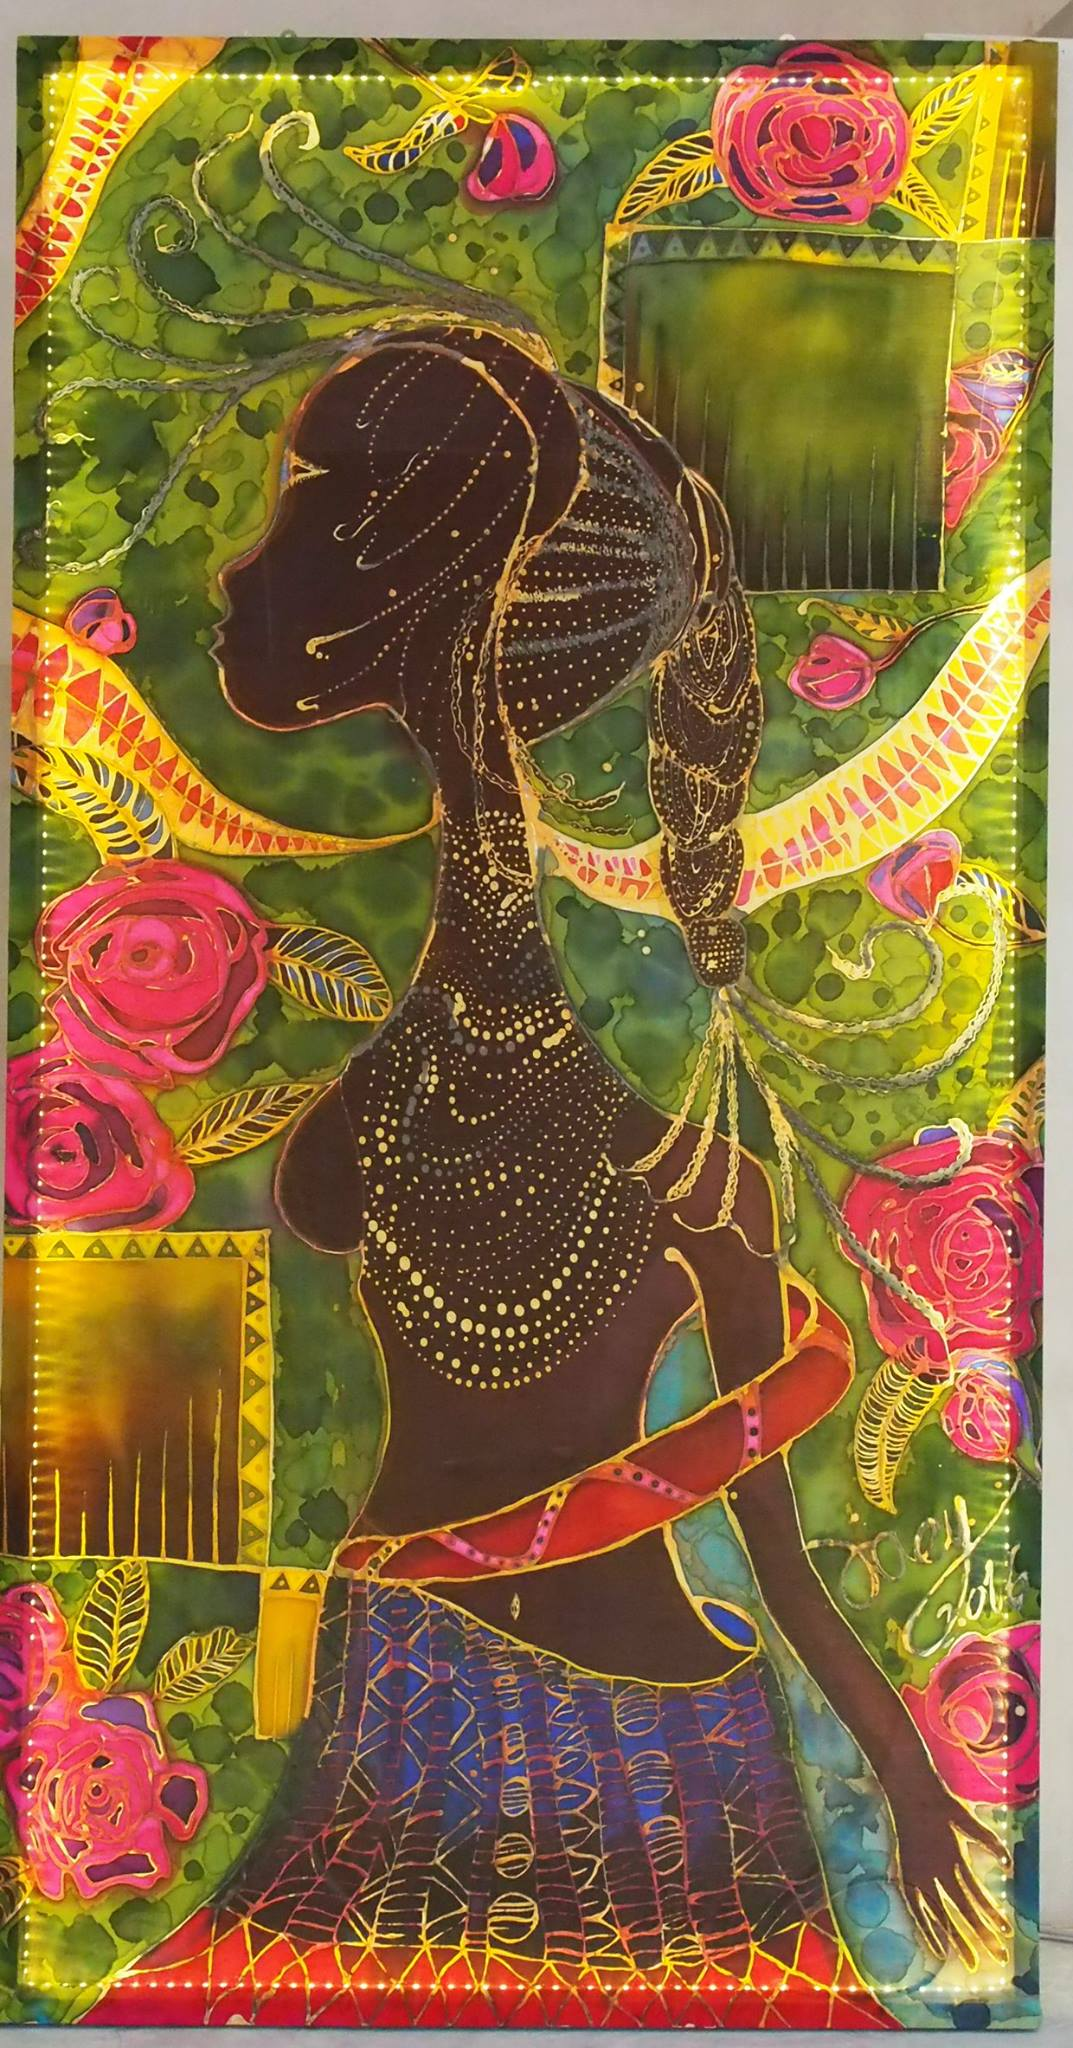 Joey Kher Batik Aotu Exhibition Black Beauty no.3 Artwork for Music Festival Batu Pahat (1)